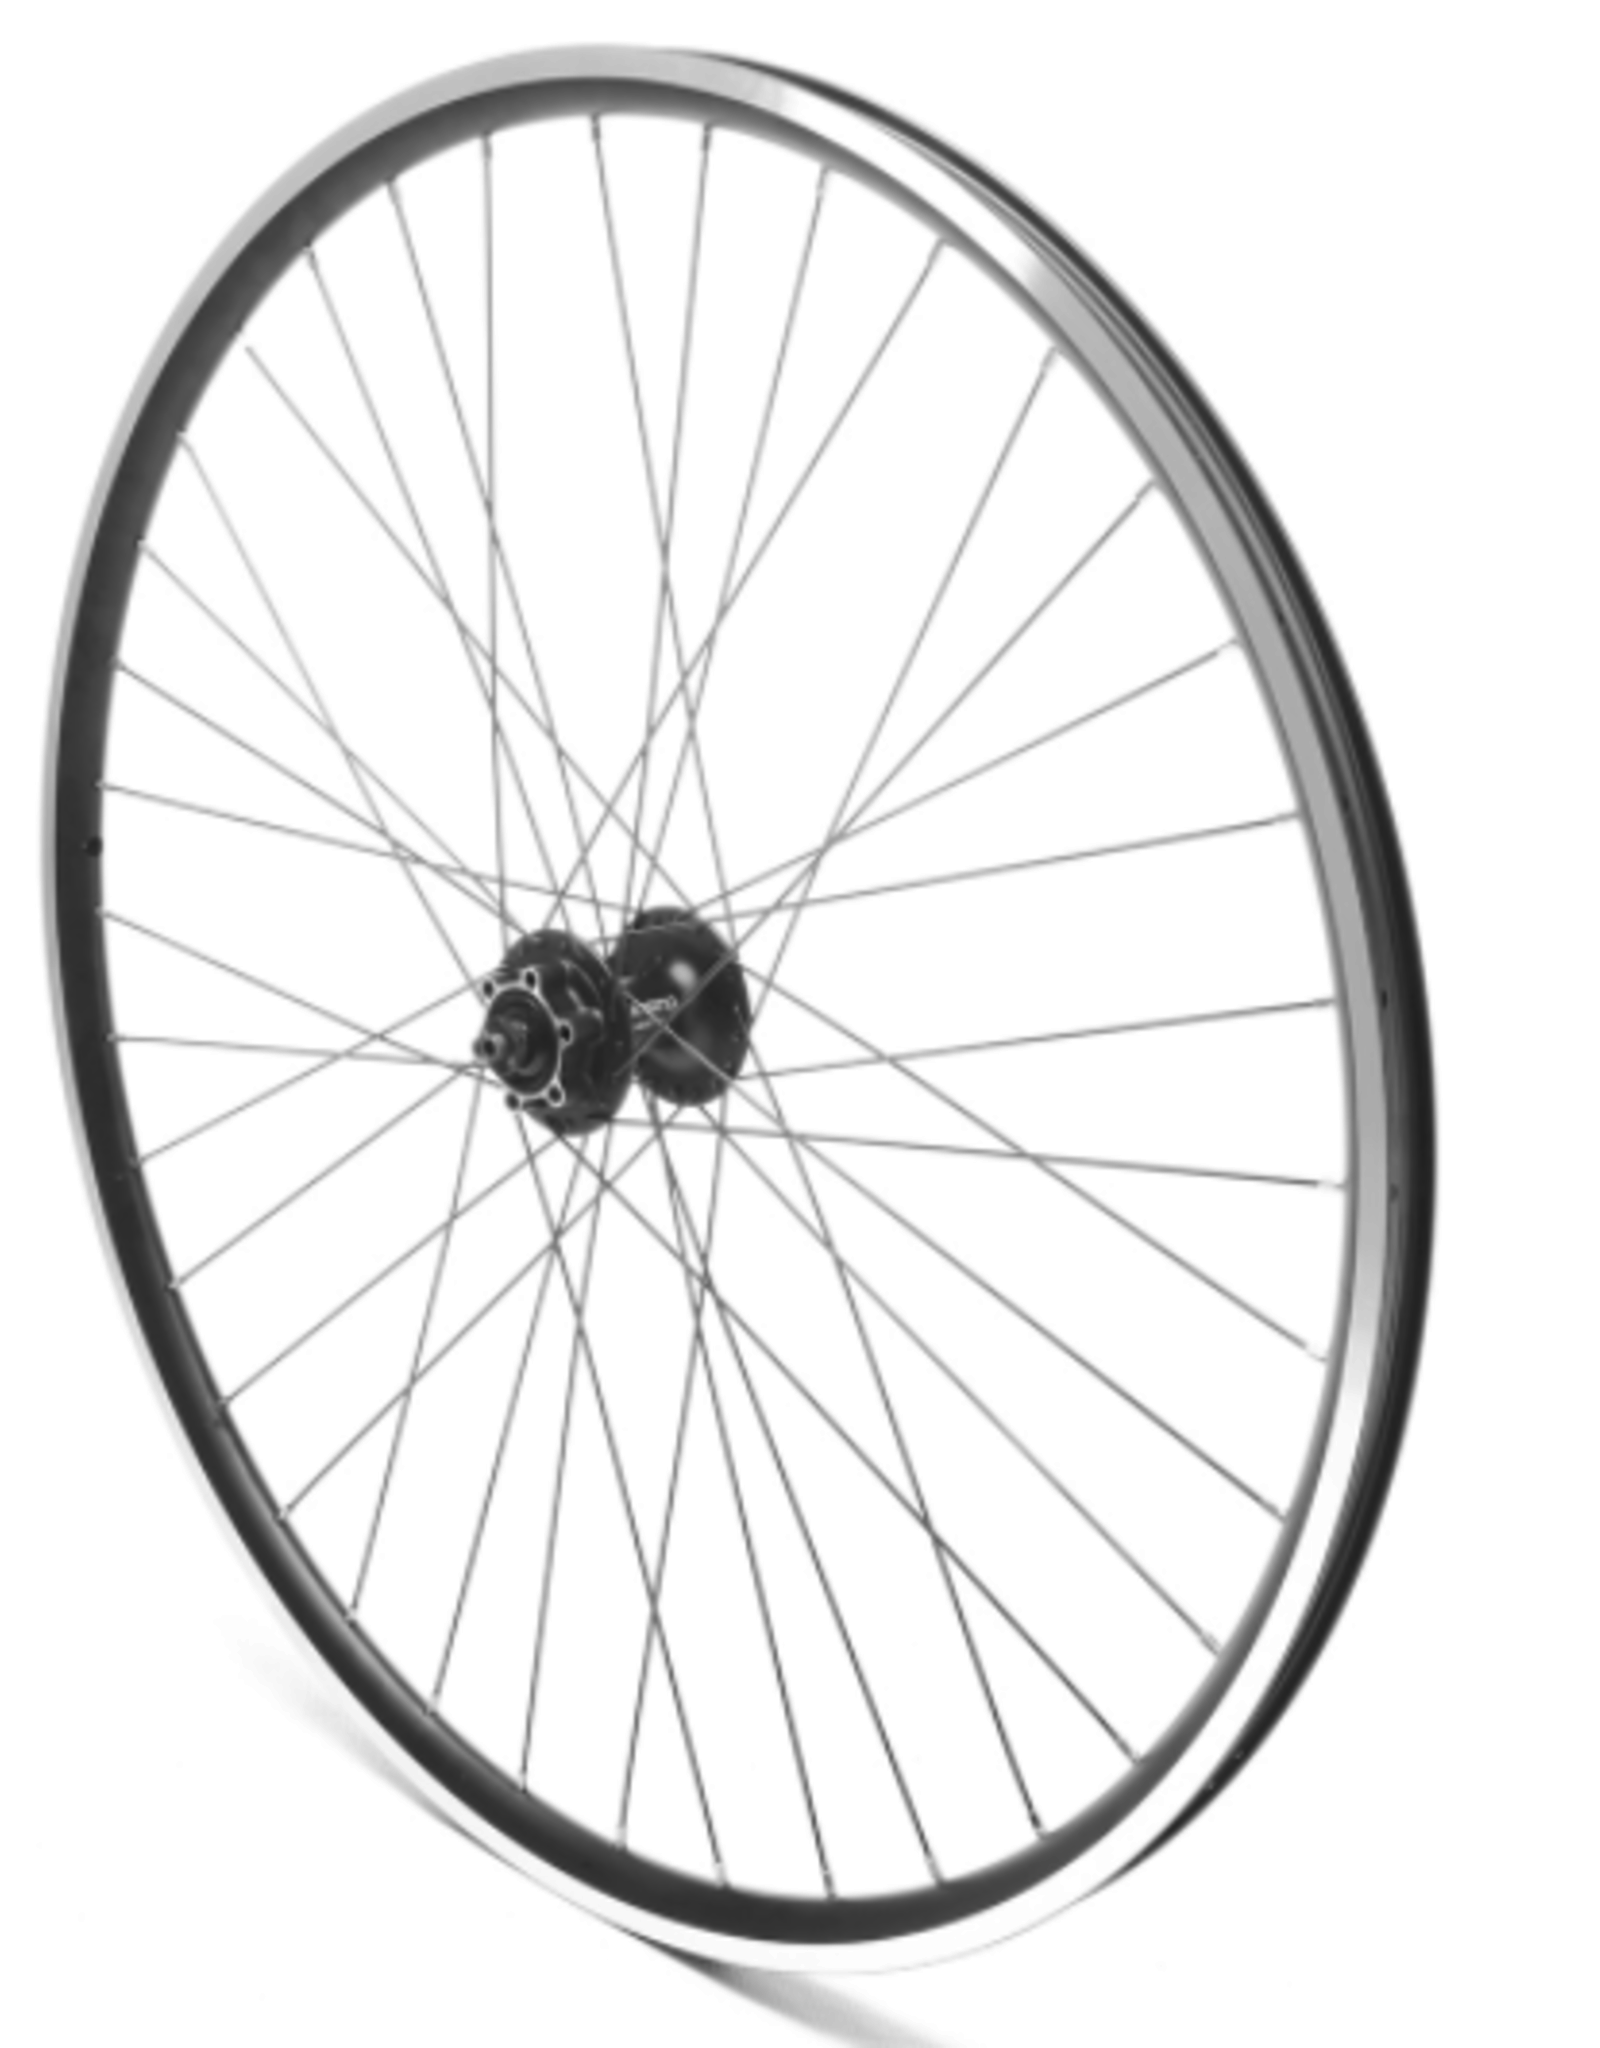 Oxford Oxford Front Wheel 700c Hybrid Black Double Wall Shimano 475